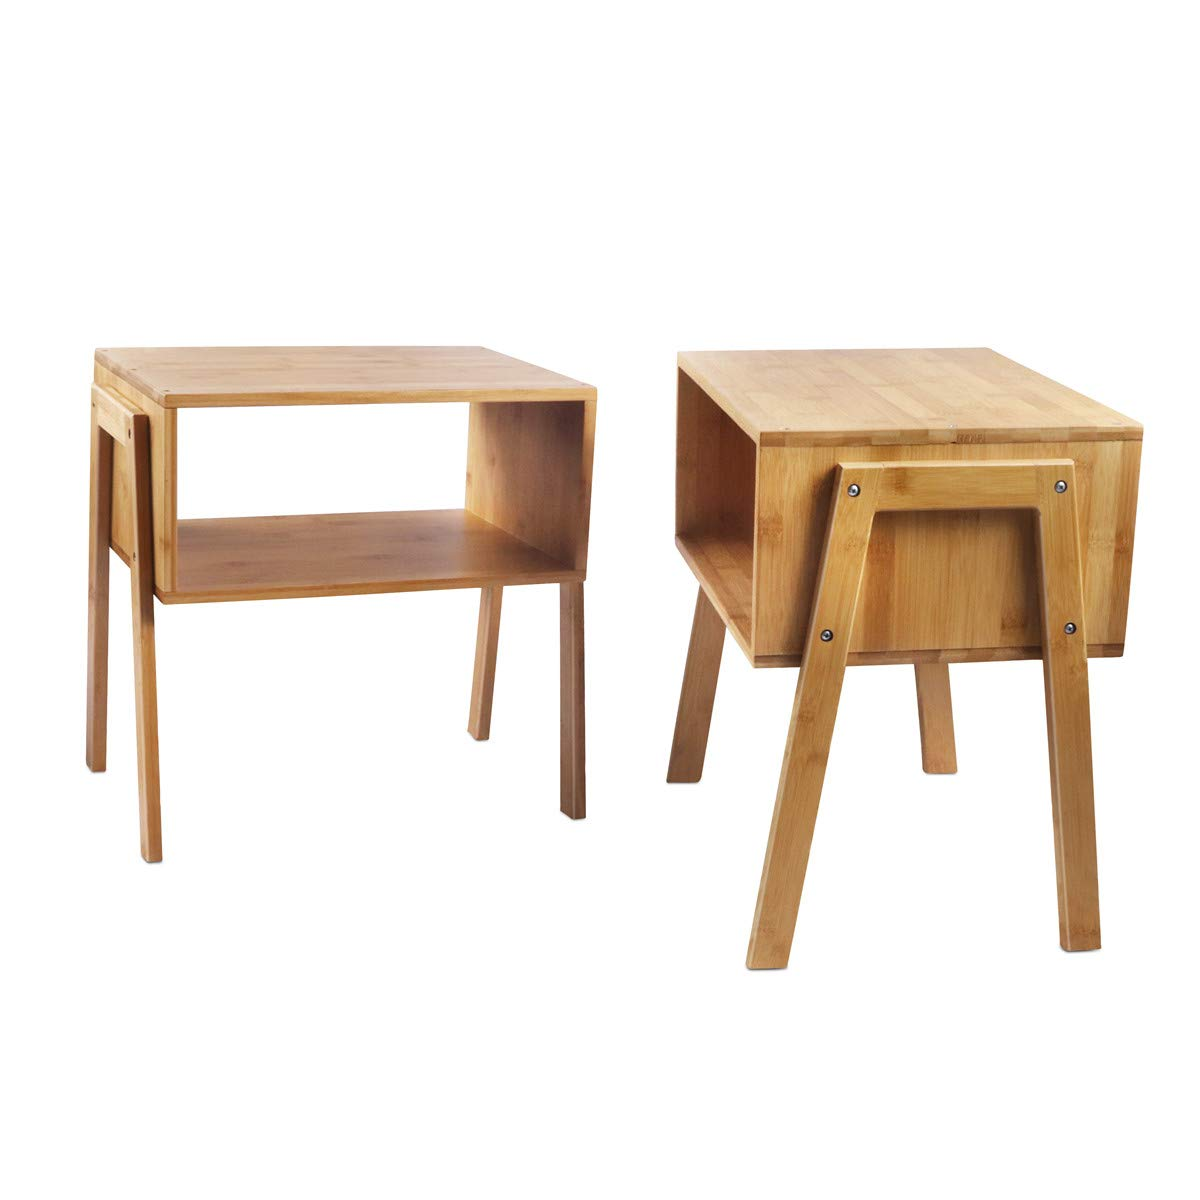 LASUAVY Bamboo Nightstand Stackable Side Table End Table Bedside Table, Set of 2 by LASUAVY